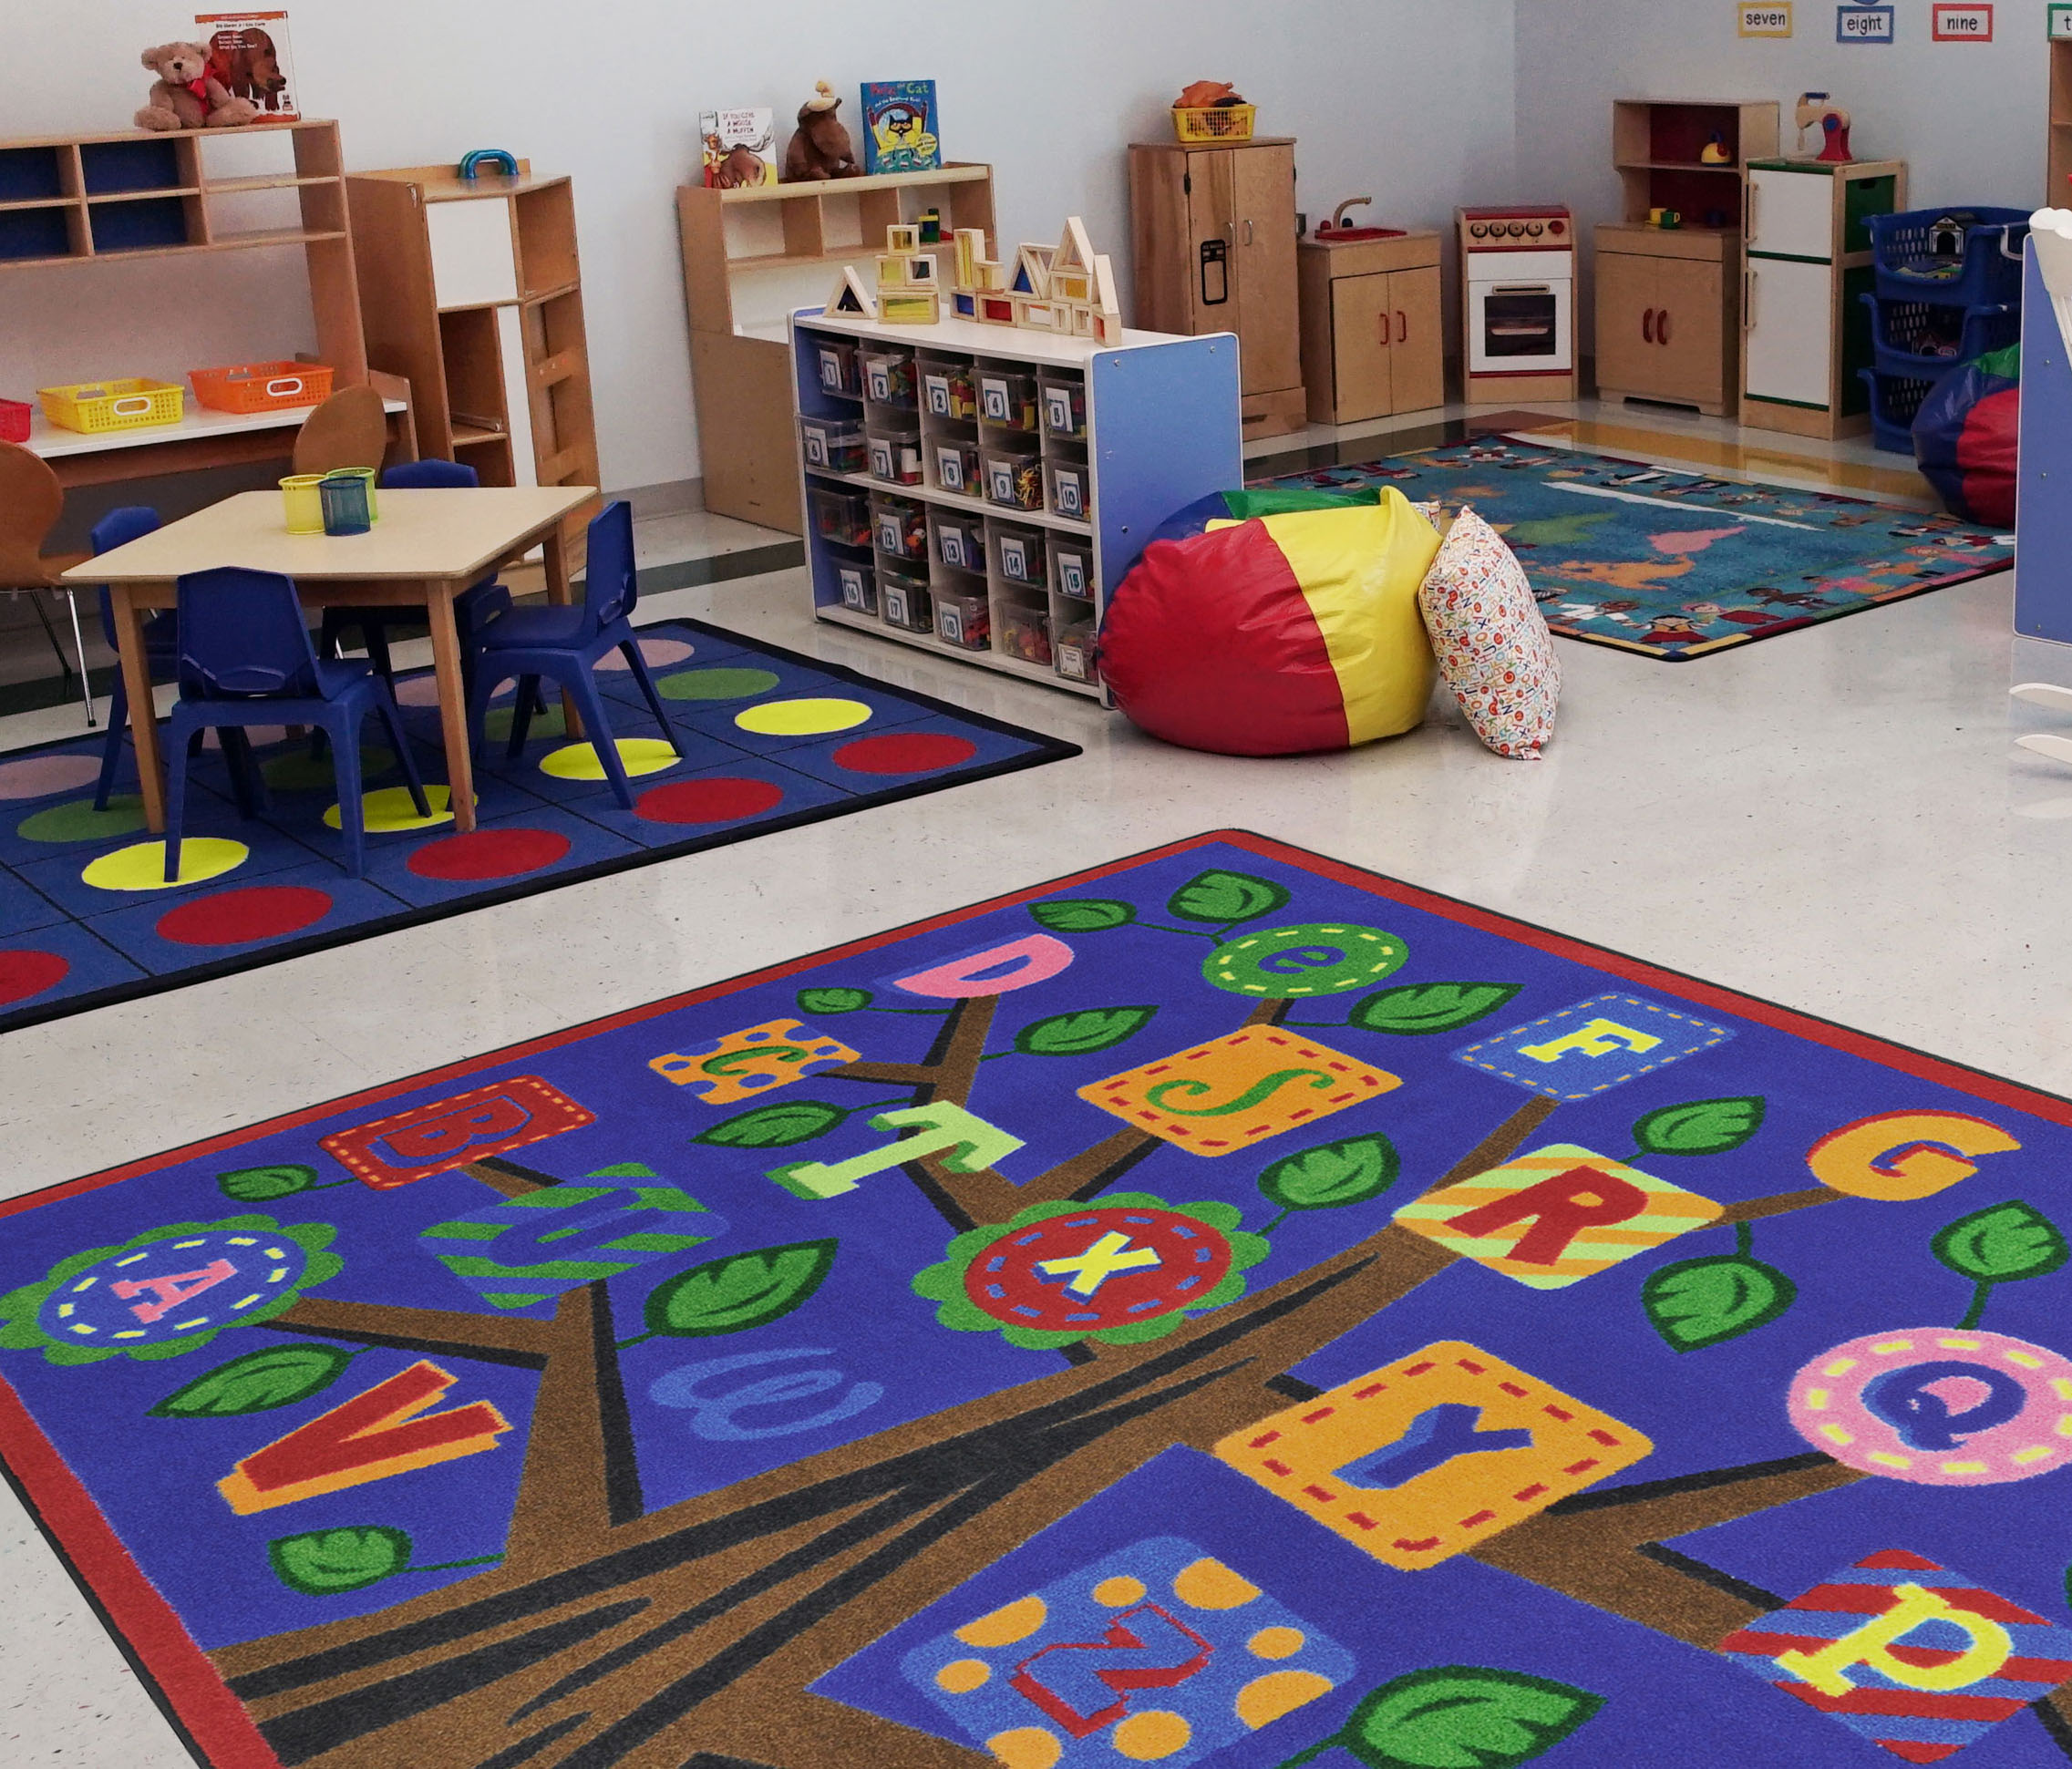 children childrens resaca ga s rug classroom rugs carpet commercial